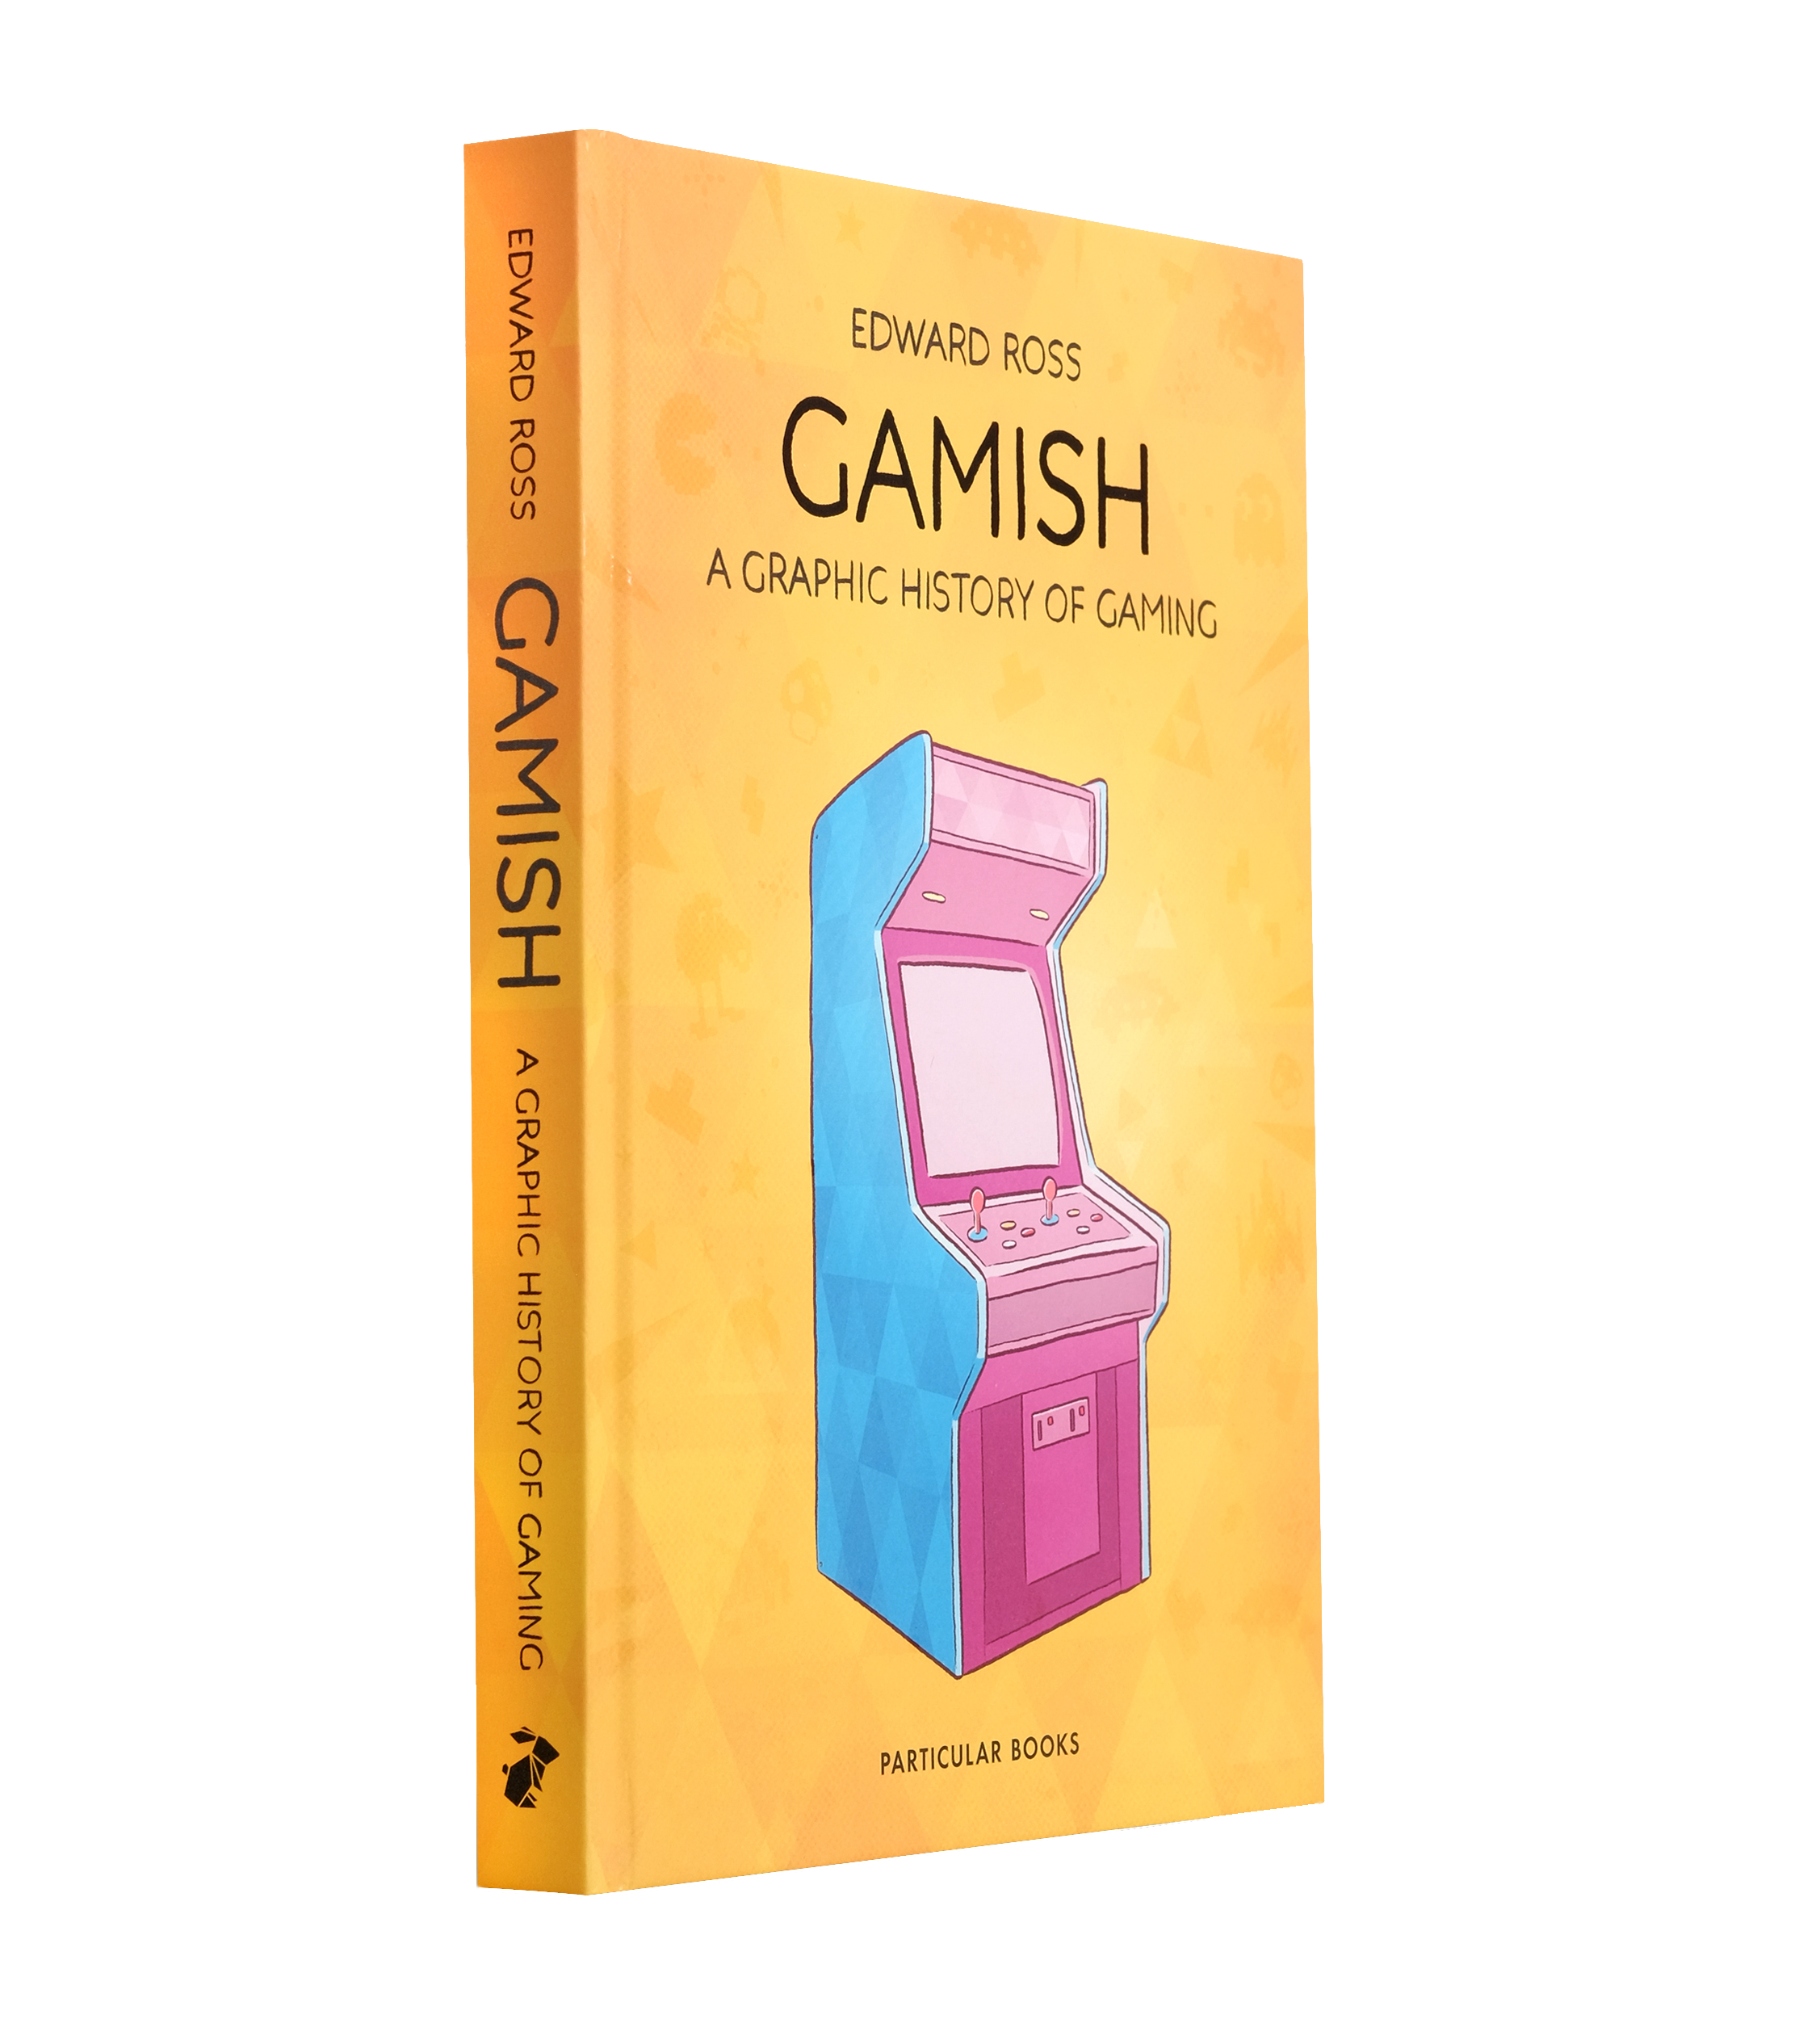 Cover for Edward Ross's graphic novel Gamish